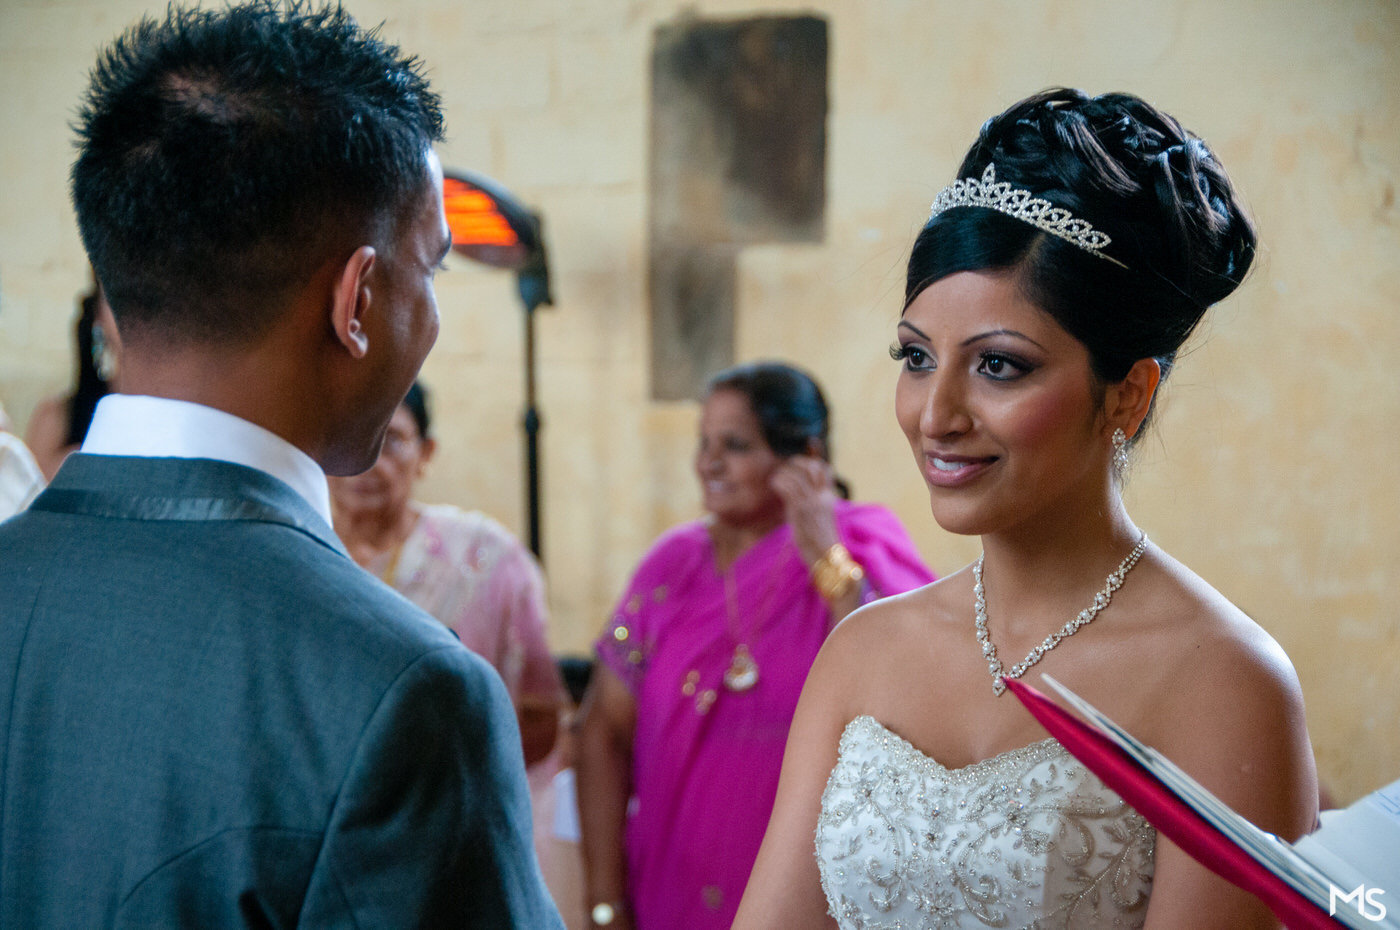 Bolsover-Castle-Indian-wedding - 13_DSC_4663.jpg